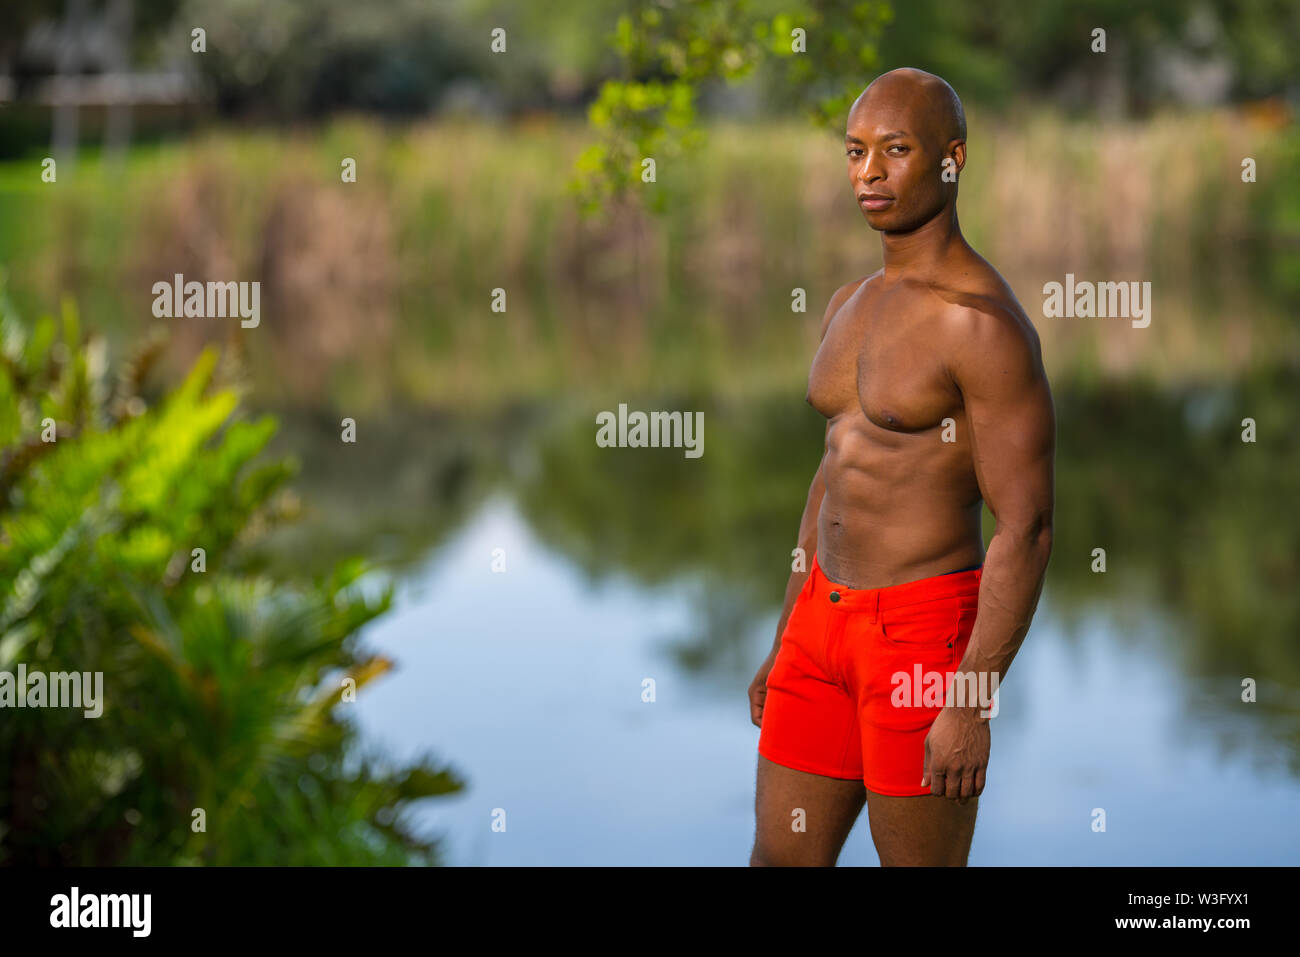 Shirtless man posing in the park. Image lit with flash - Stock Image